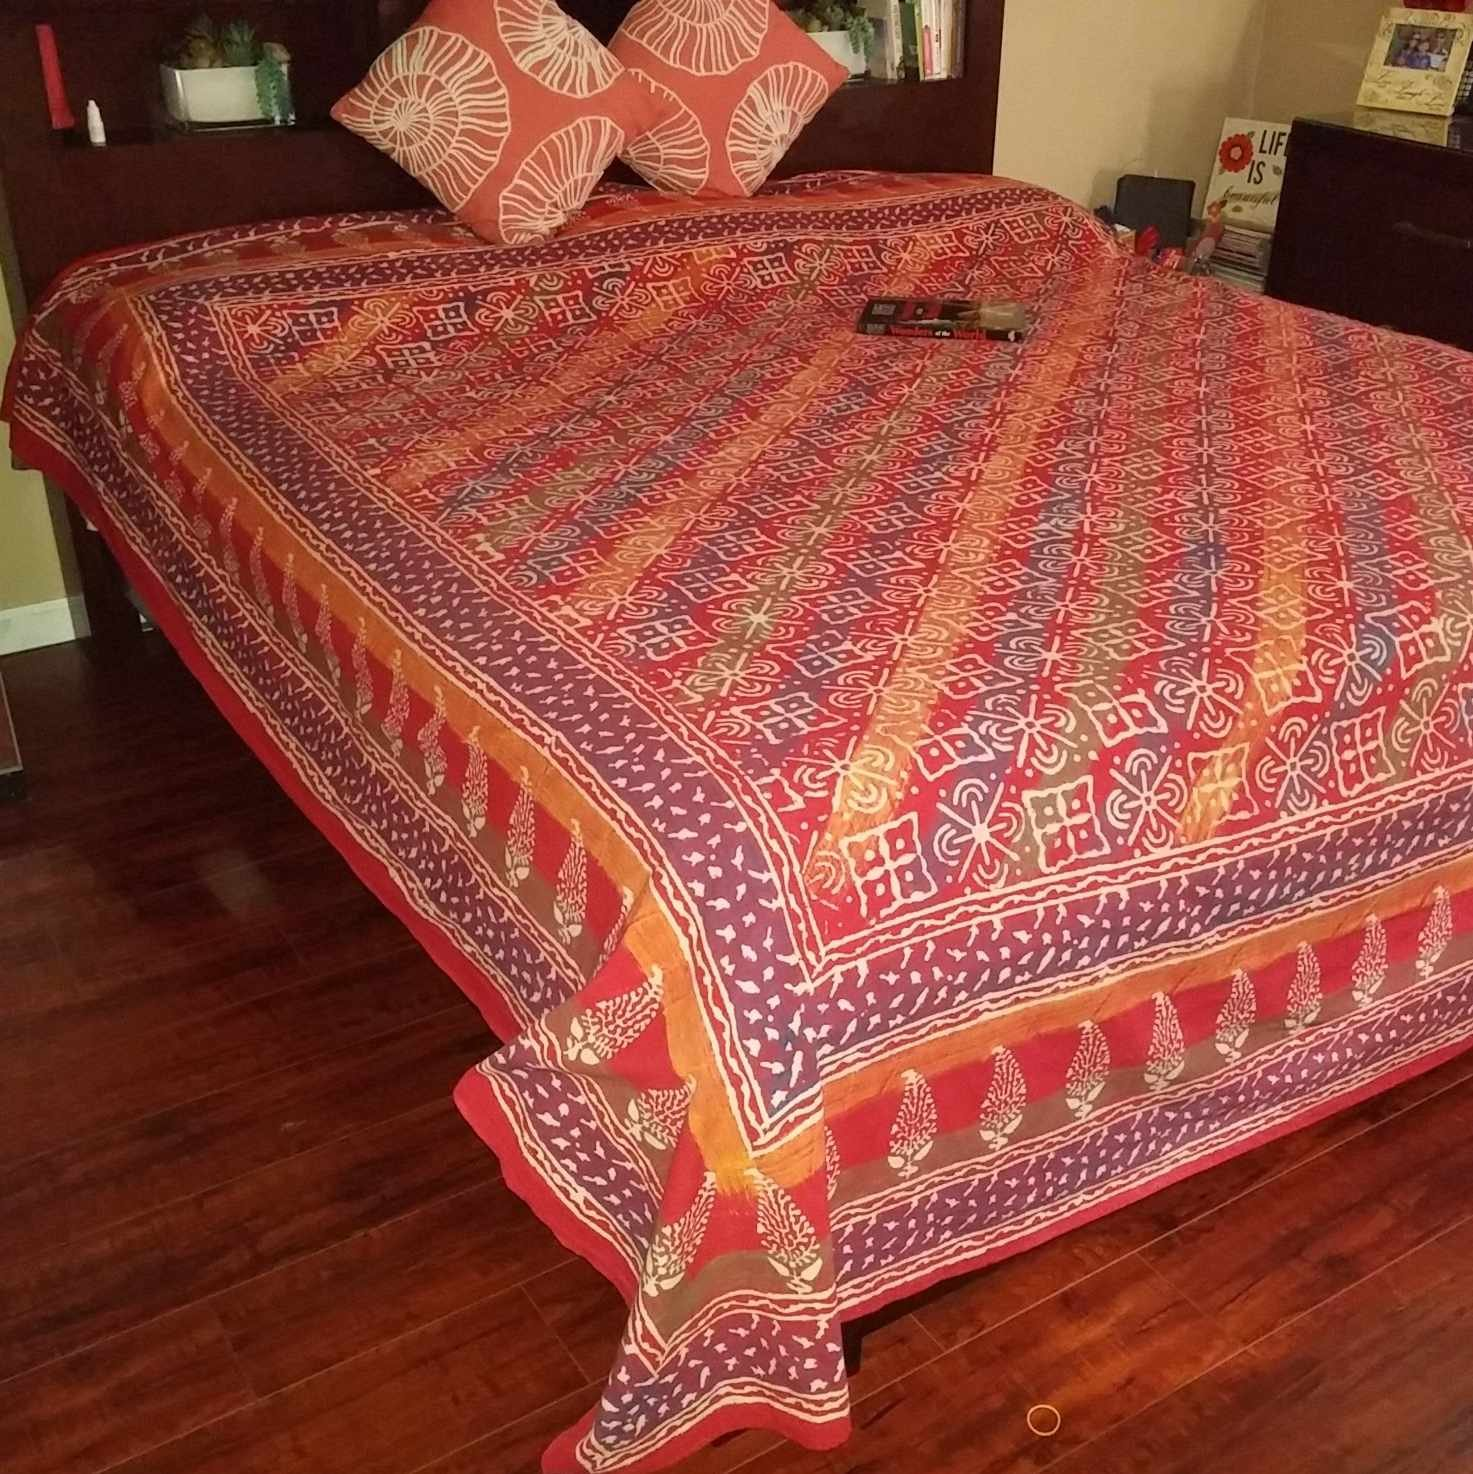 Handmade Cotton Hand Block Print Dabu Floral Tapestry Tablecloth Bedspread Throw Beach Sheet Sun Canopy Full